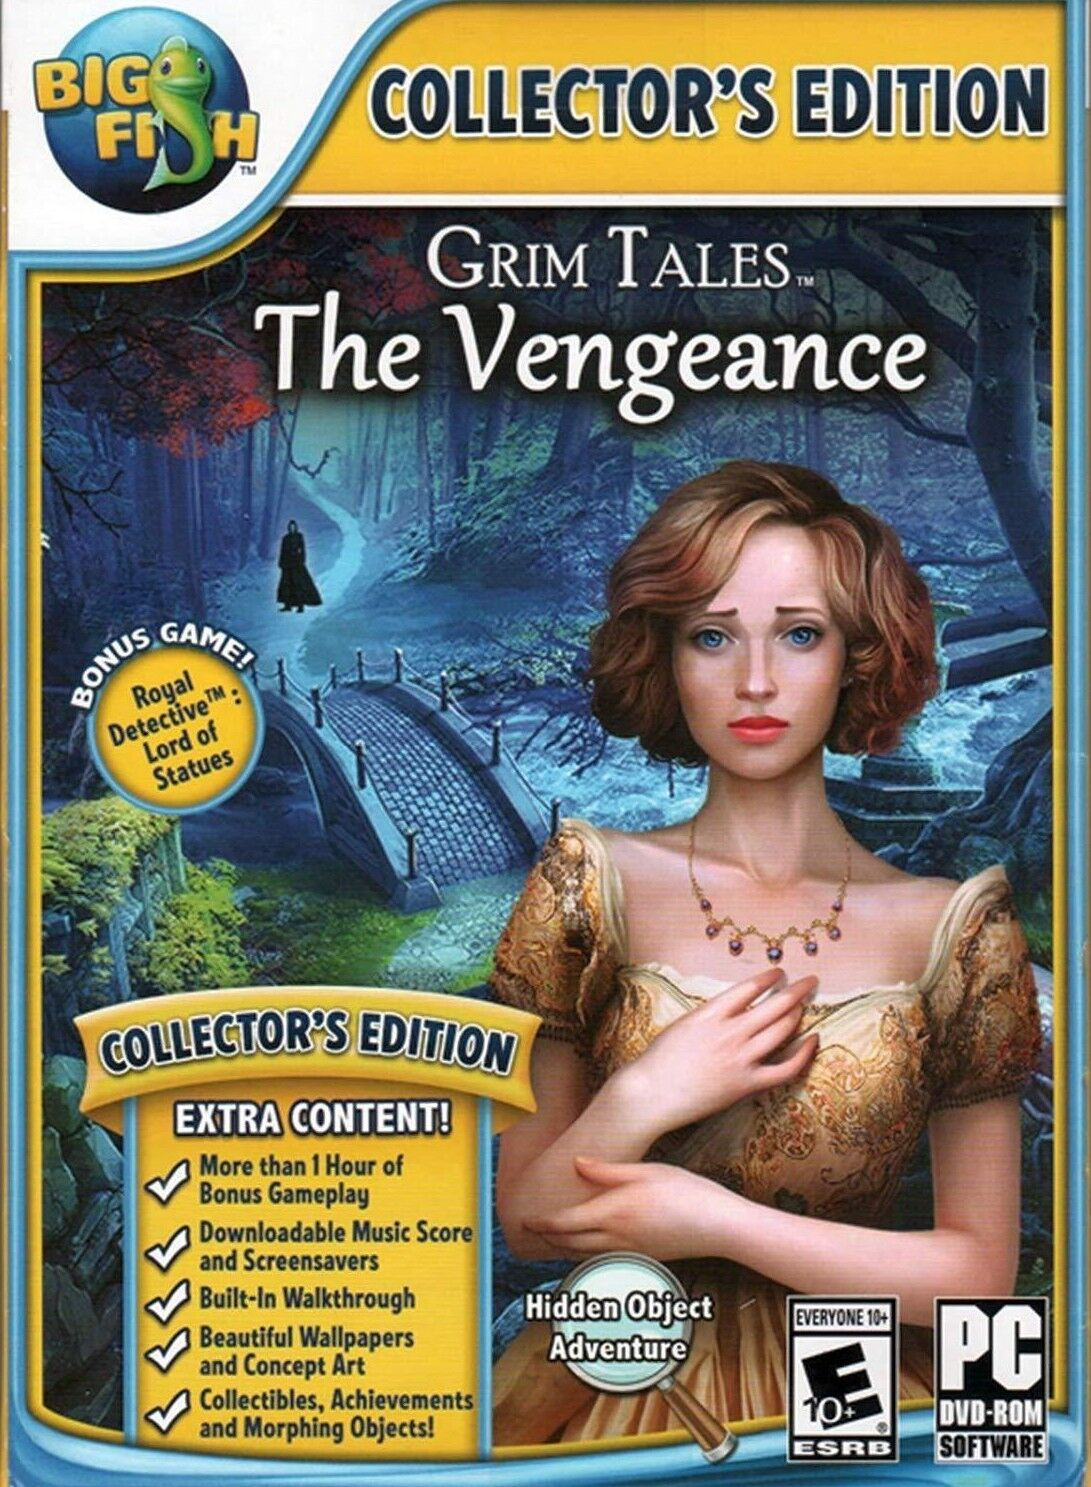 Computer Games - Grim Tales The Vengeance Collector's Edition PC Games Windows 10 8 7 XP Computer